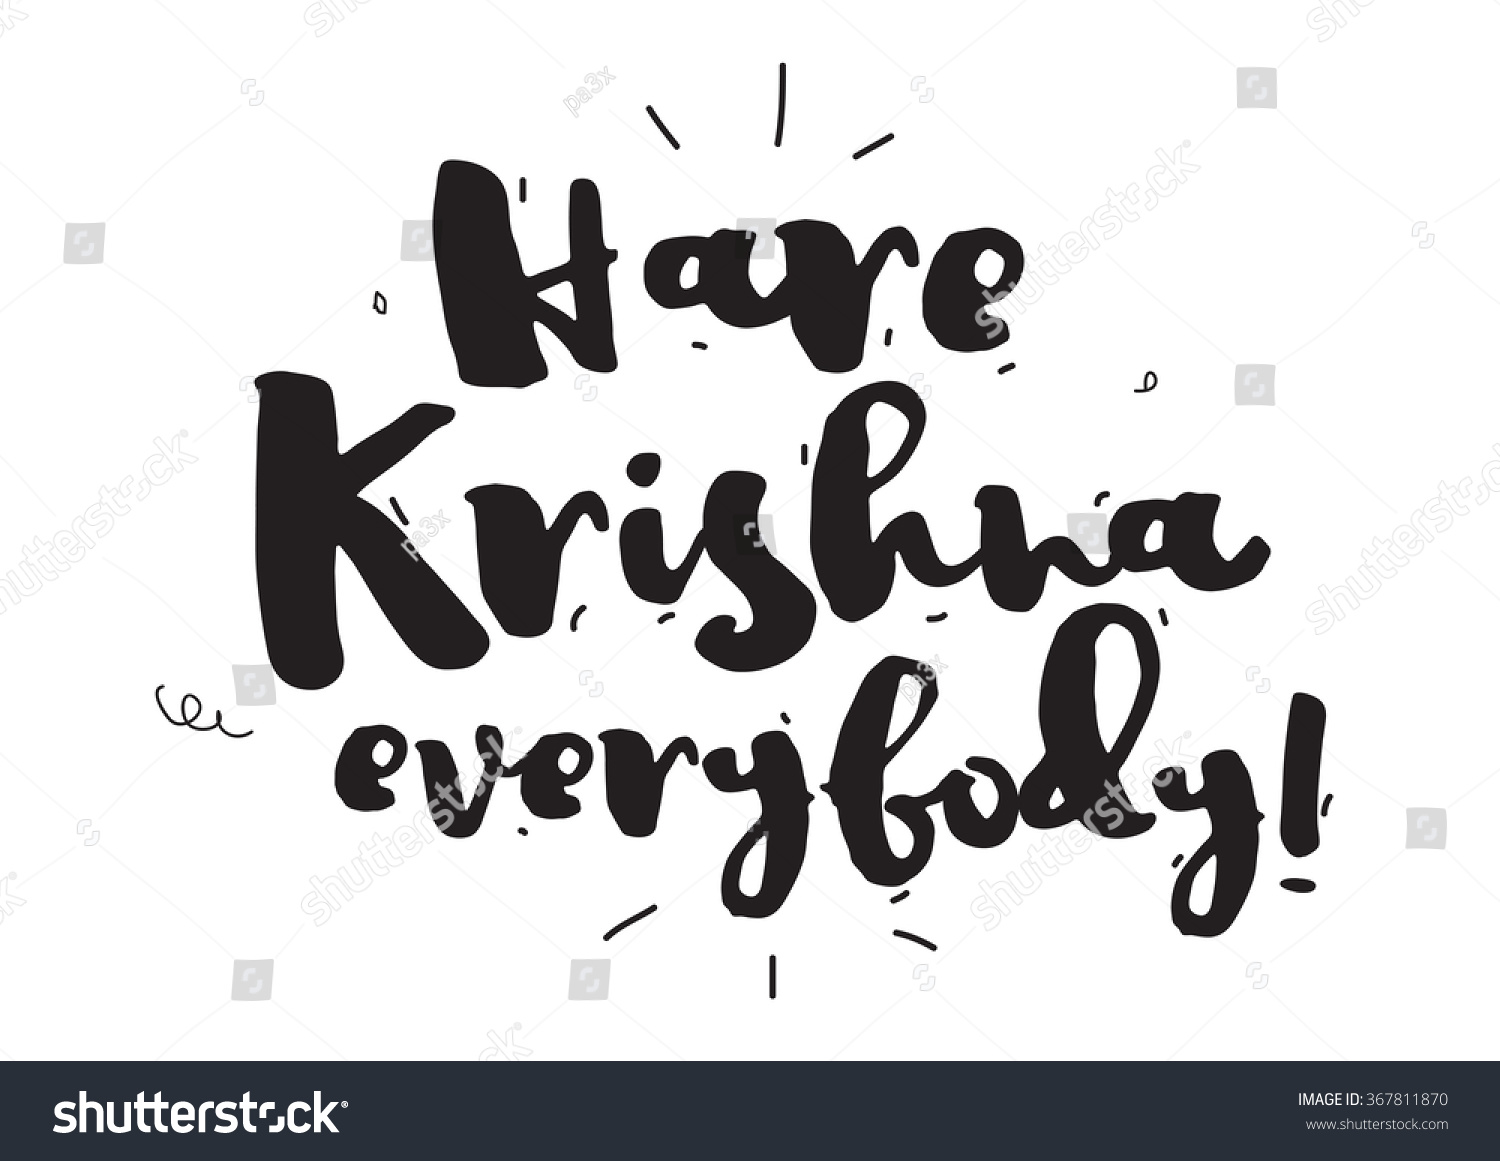 Hare krishna greeting card calligraphy hand stock vector 367811870 hare krishna greeting card with calligraphy hand drawn design elements inspirational quote kristyandbryce Gallery